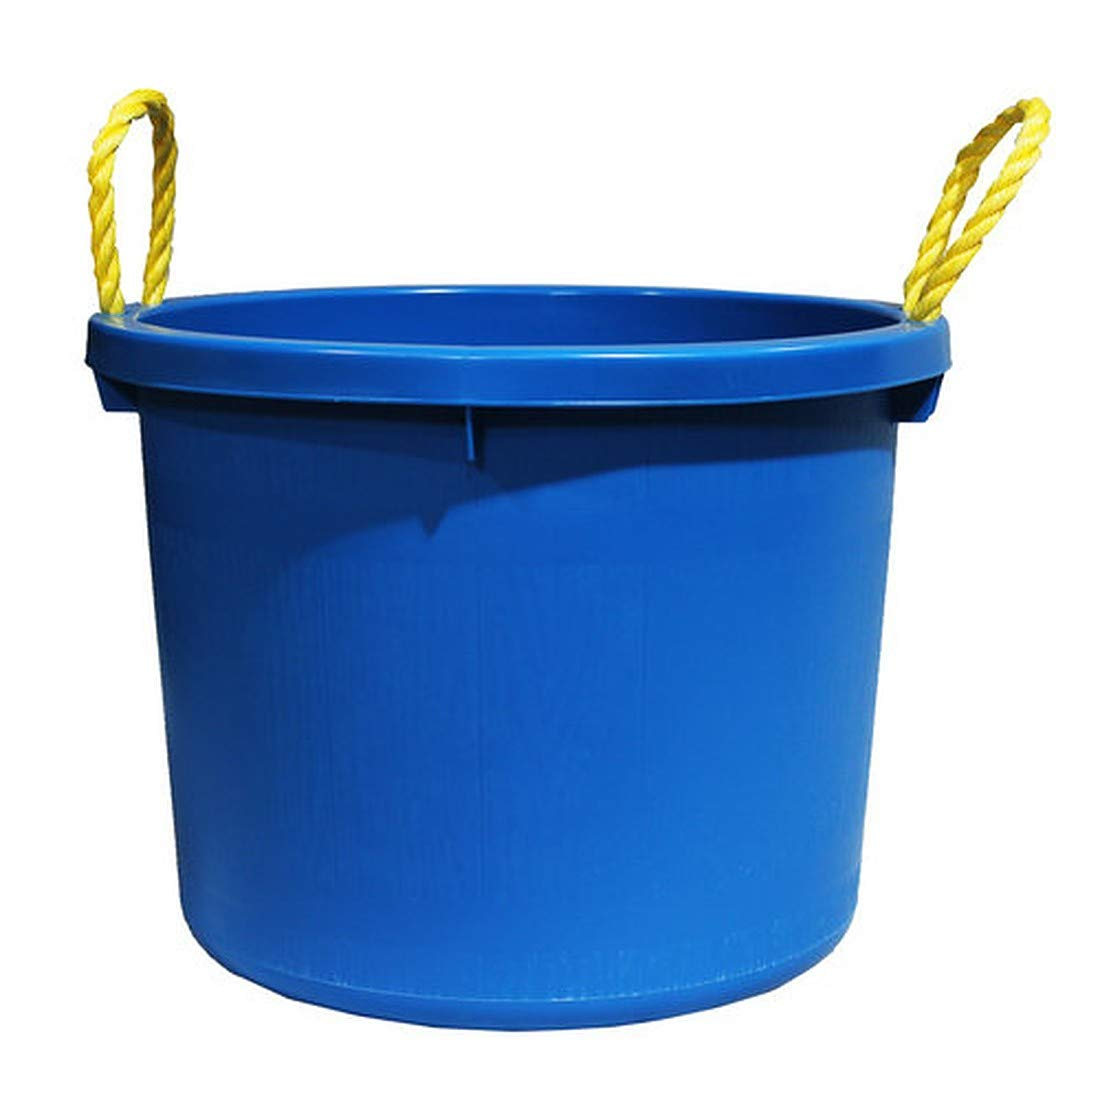 Fortiflex Multi-Purpose Storage Bucket for Dogs/Cats and Horses, 70-Quart, Blue